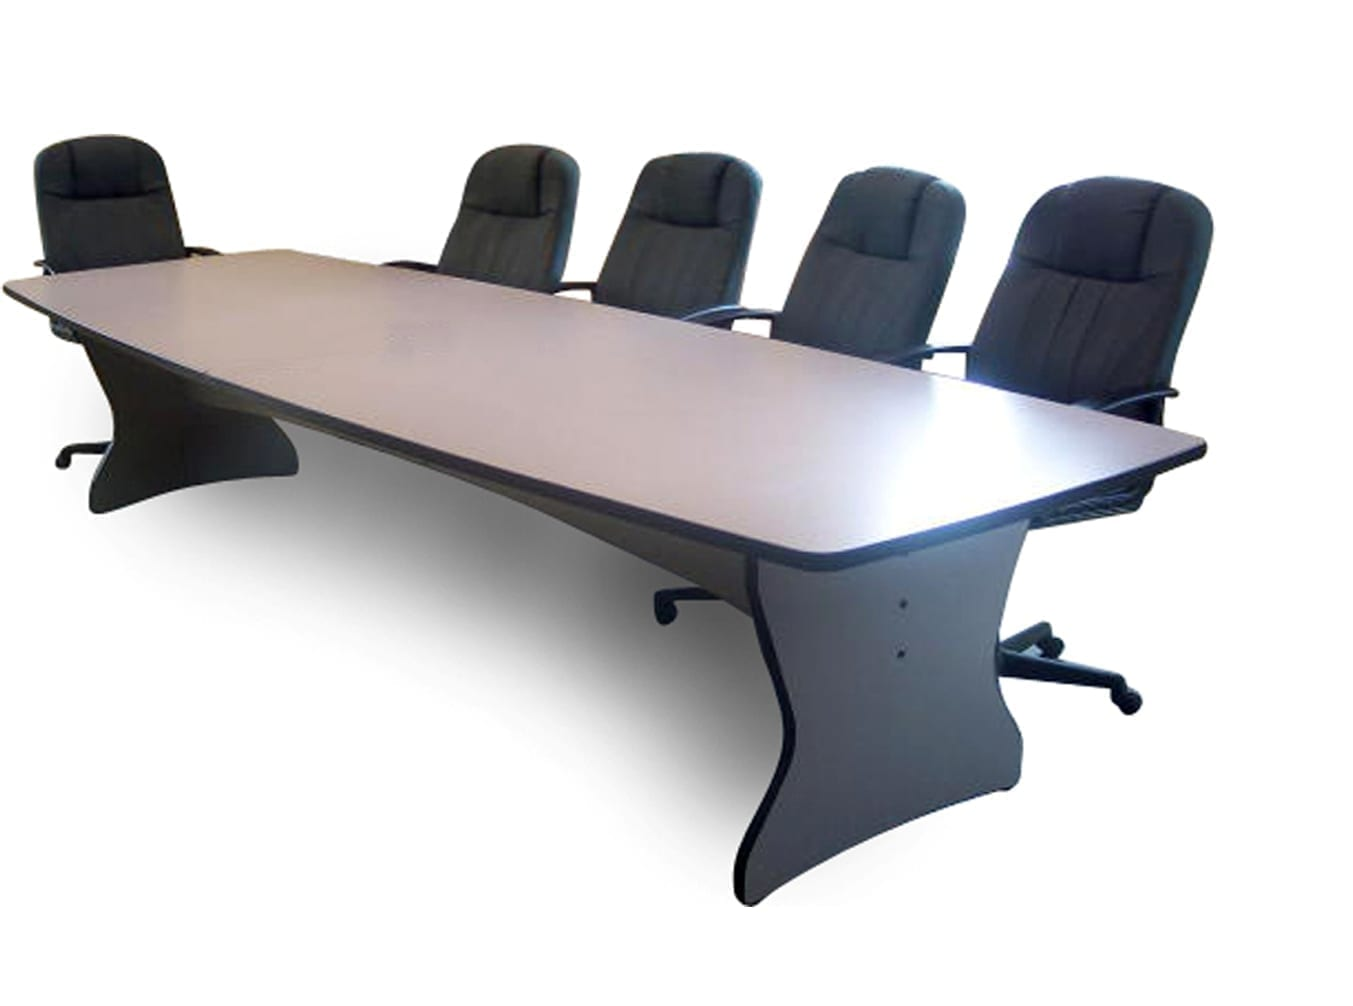 boat_shape_conference_table_3.jpg